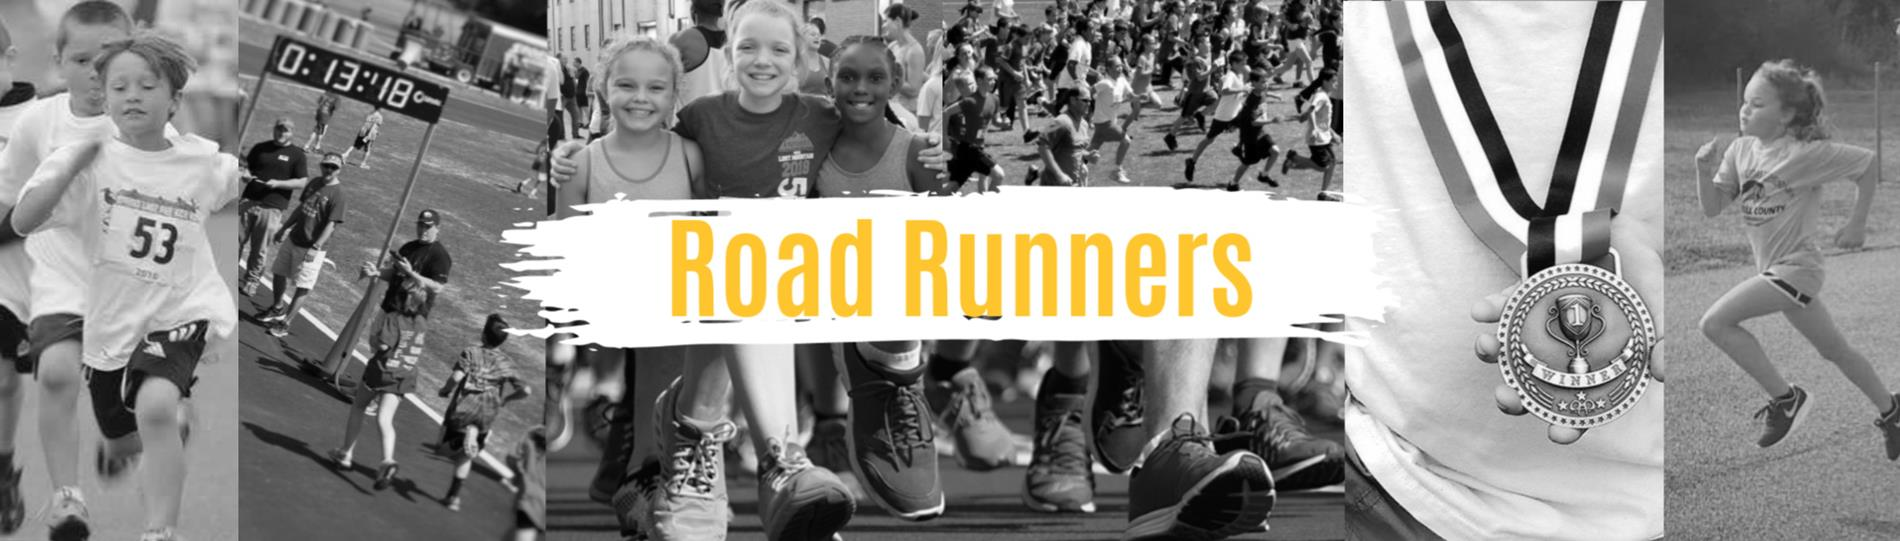 road runners banner